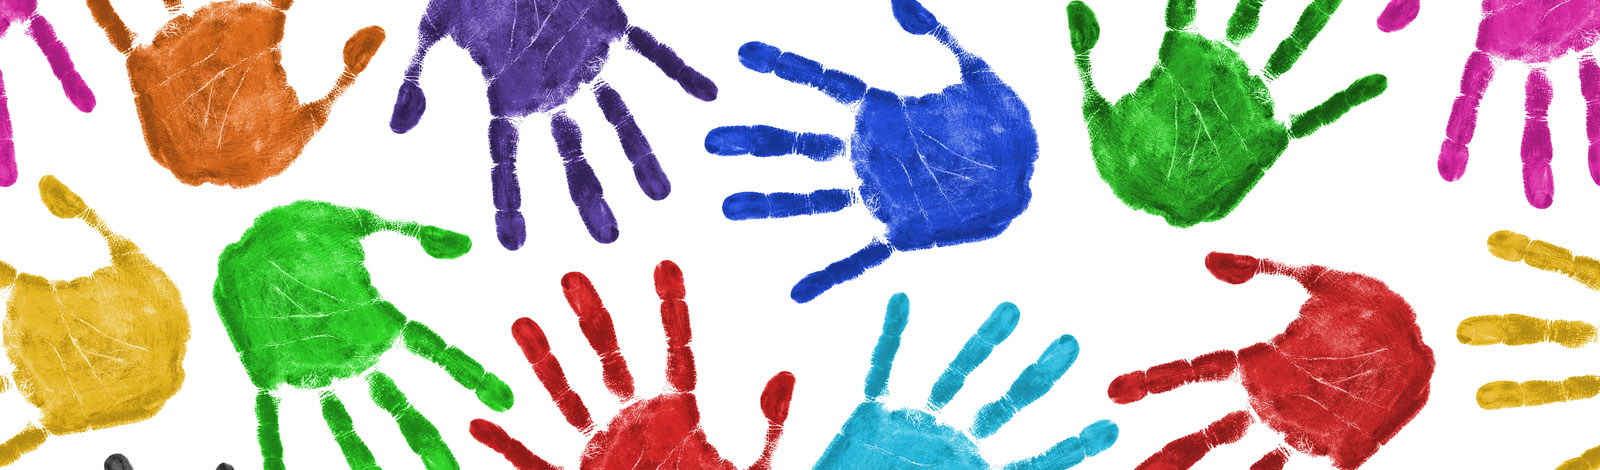 Child hand in adult hand print clipart png clipart Childrens Hand Print | Free download best Childrens Hand Print on ... clipart